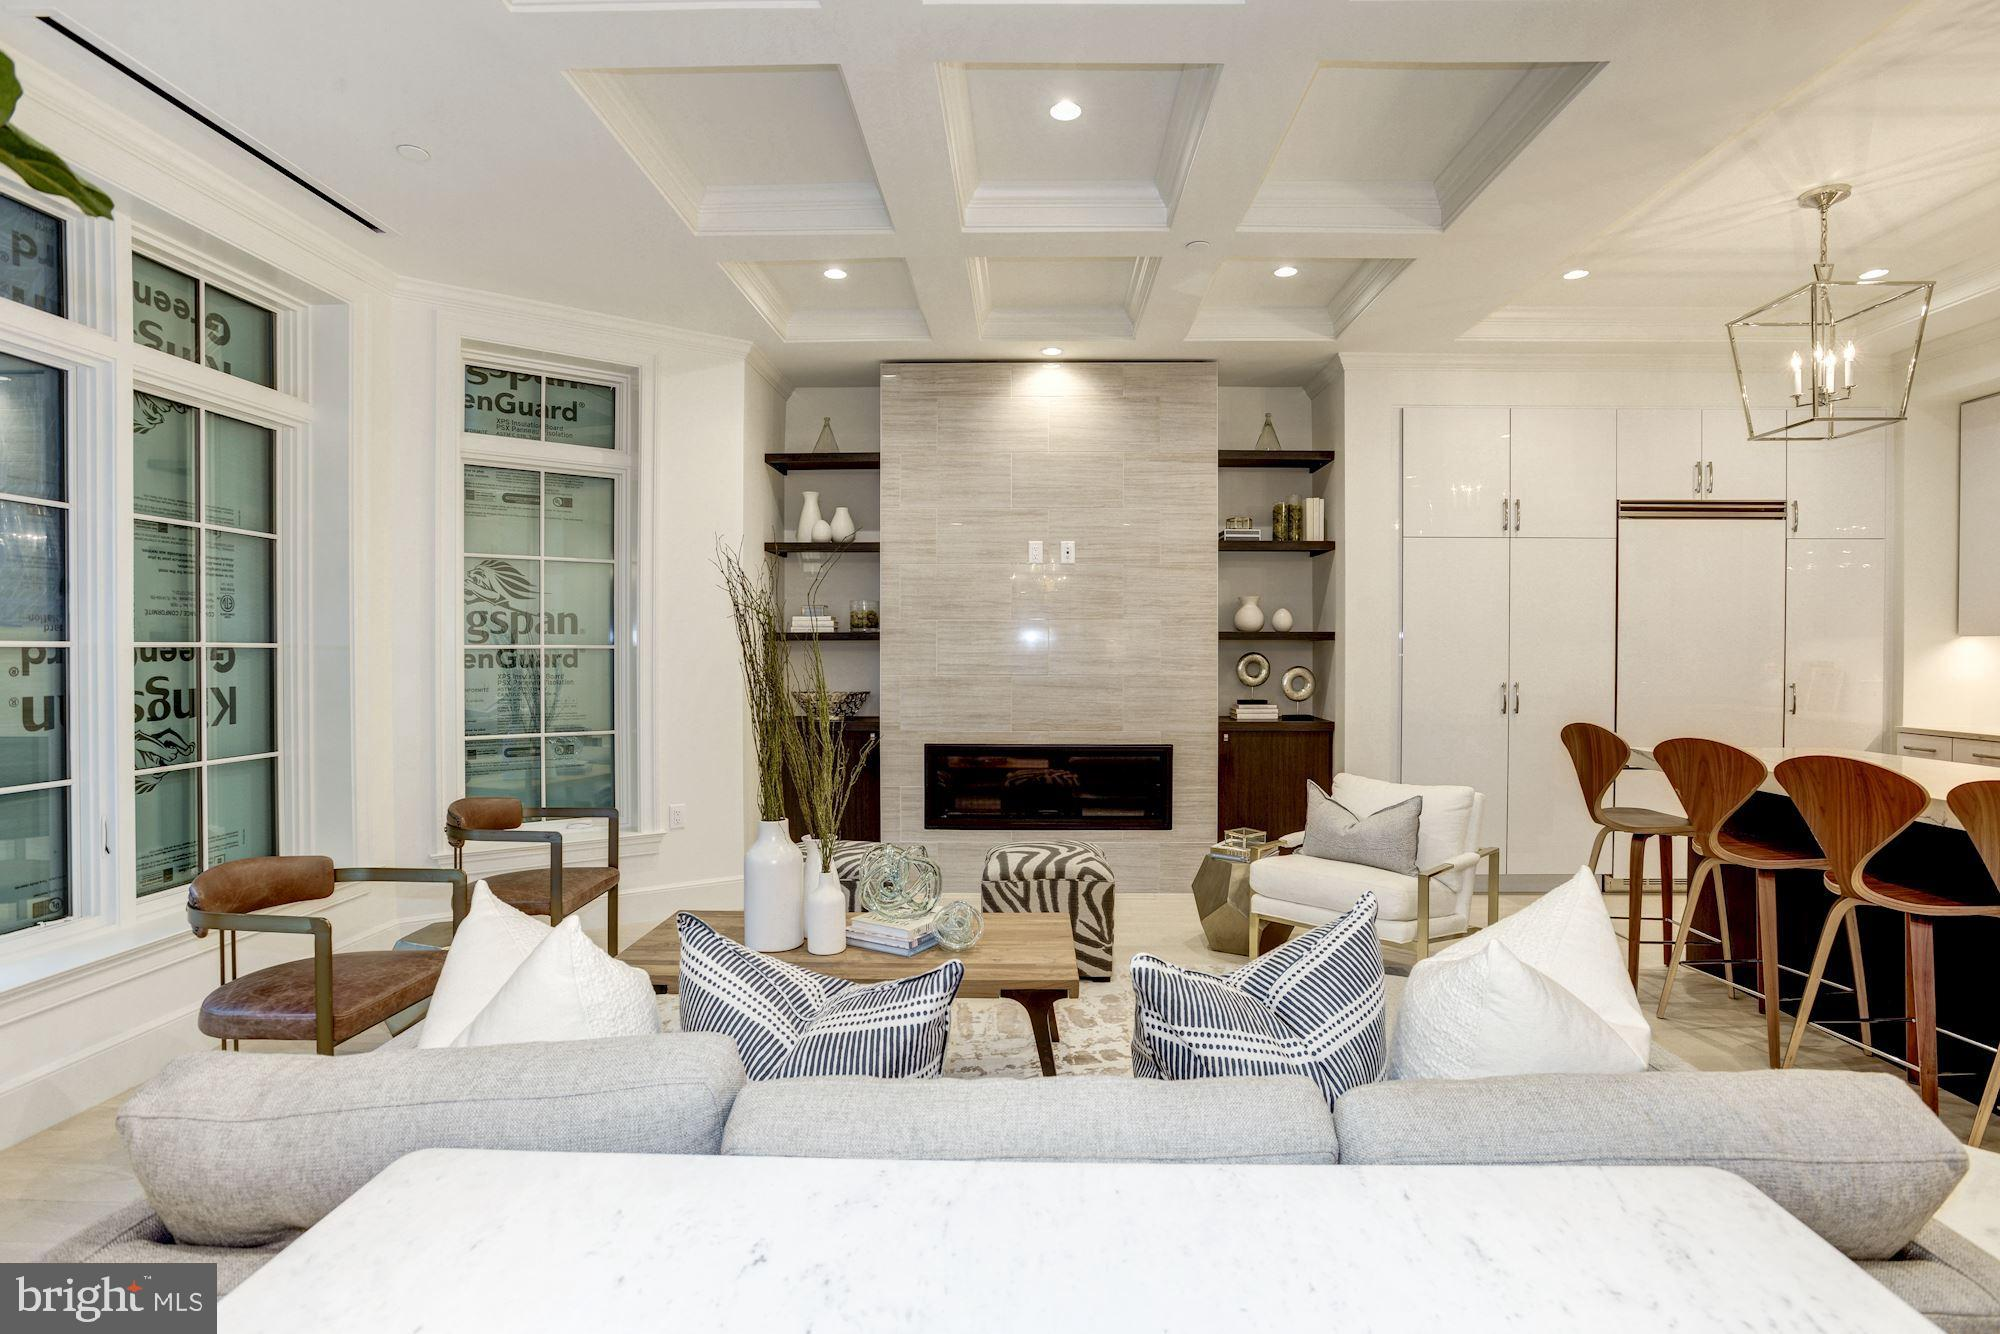 STUNNING 2 BR + DEN +2 BA  + 1 PKG located in the epicenter of historic Dupont Circle. THE PACIFICA